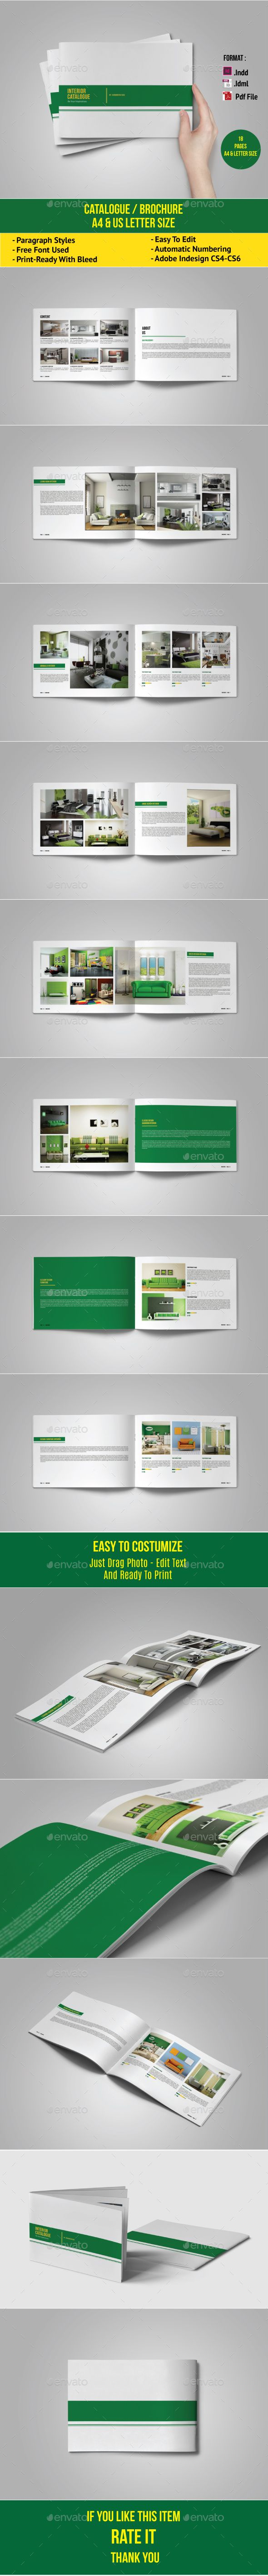 Multipurpose Catalogue/Brochure | Broschüren